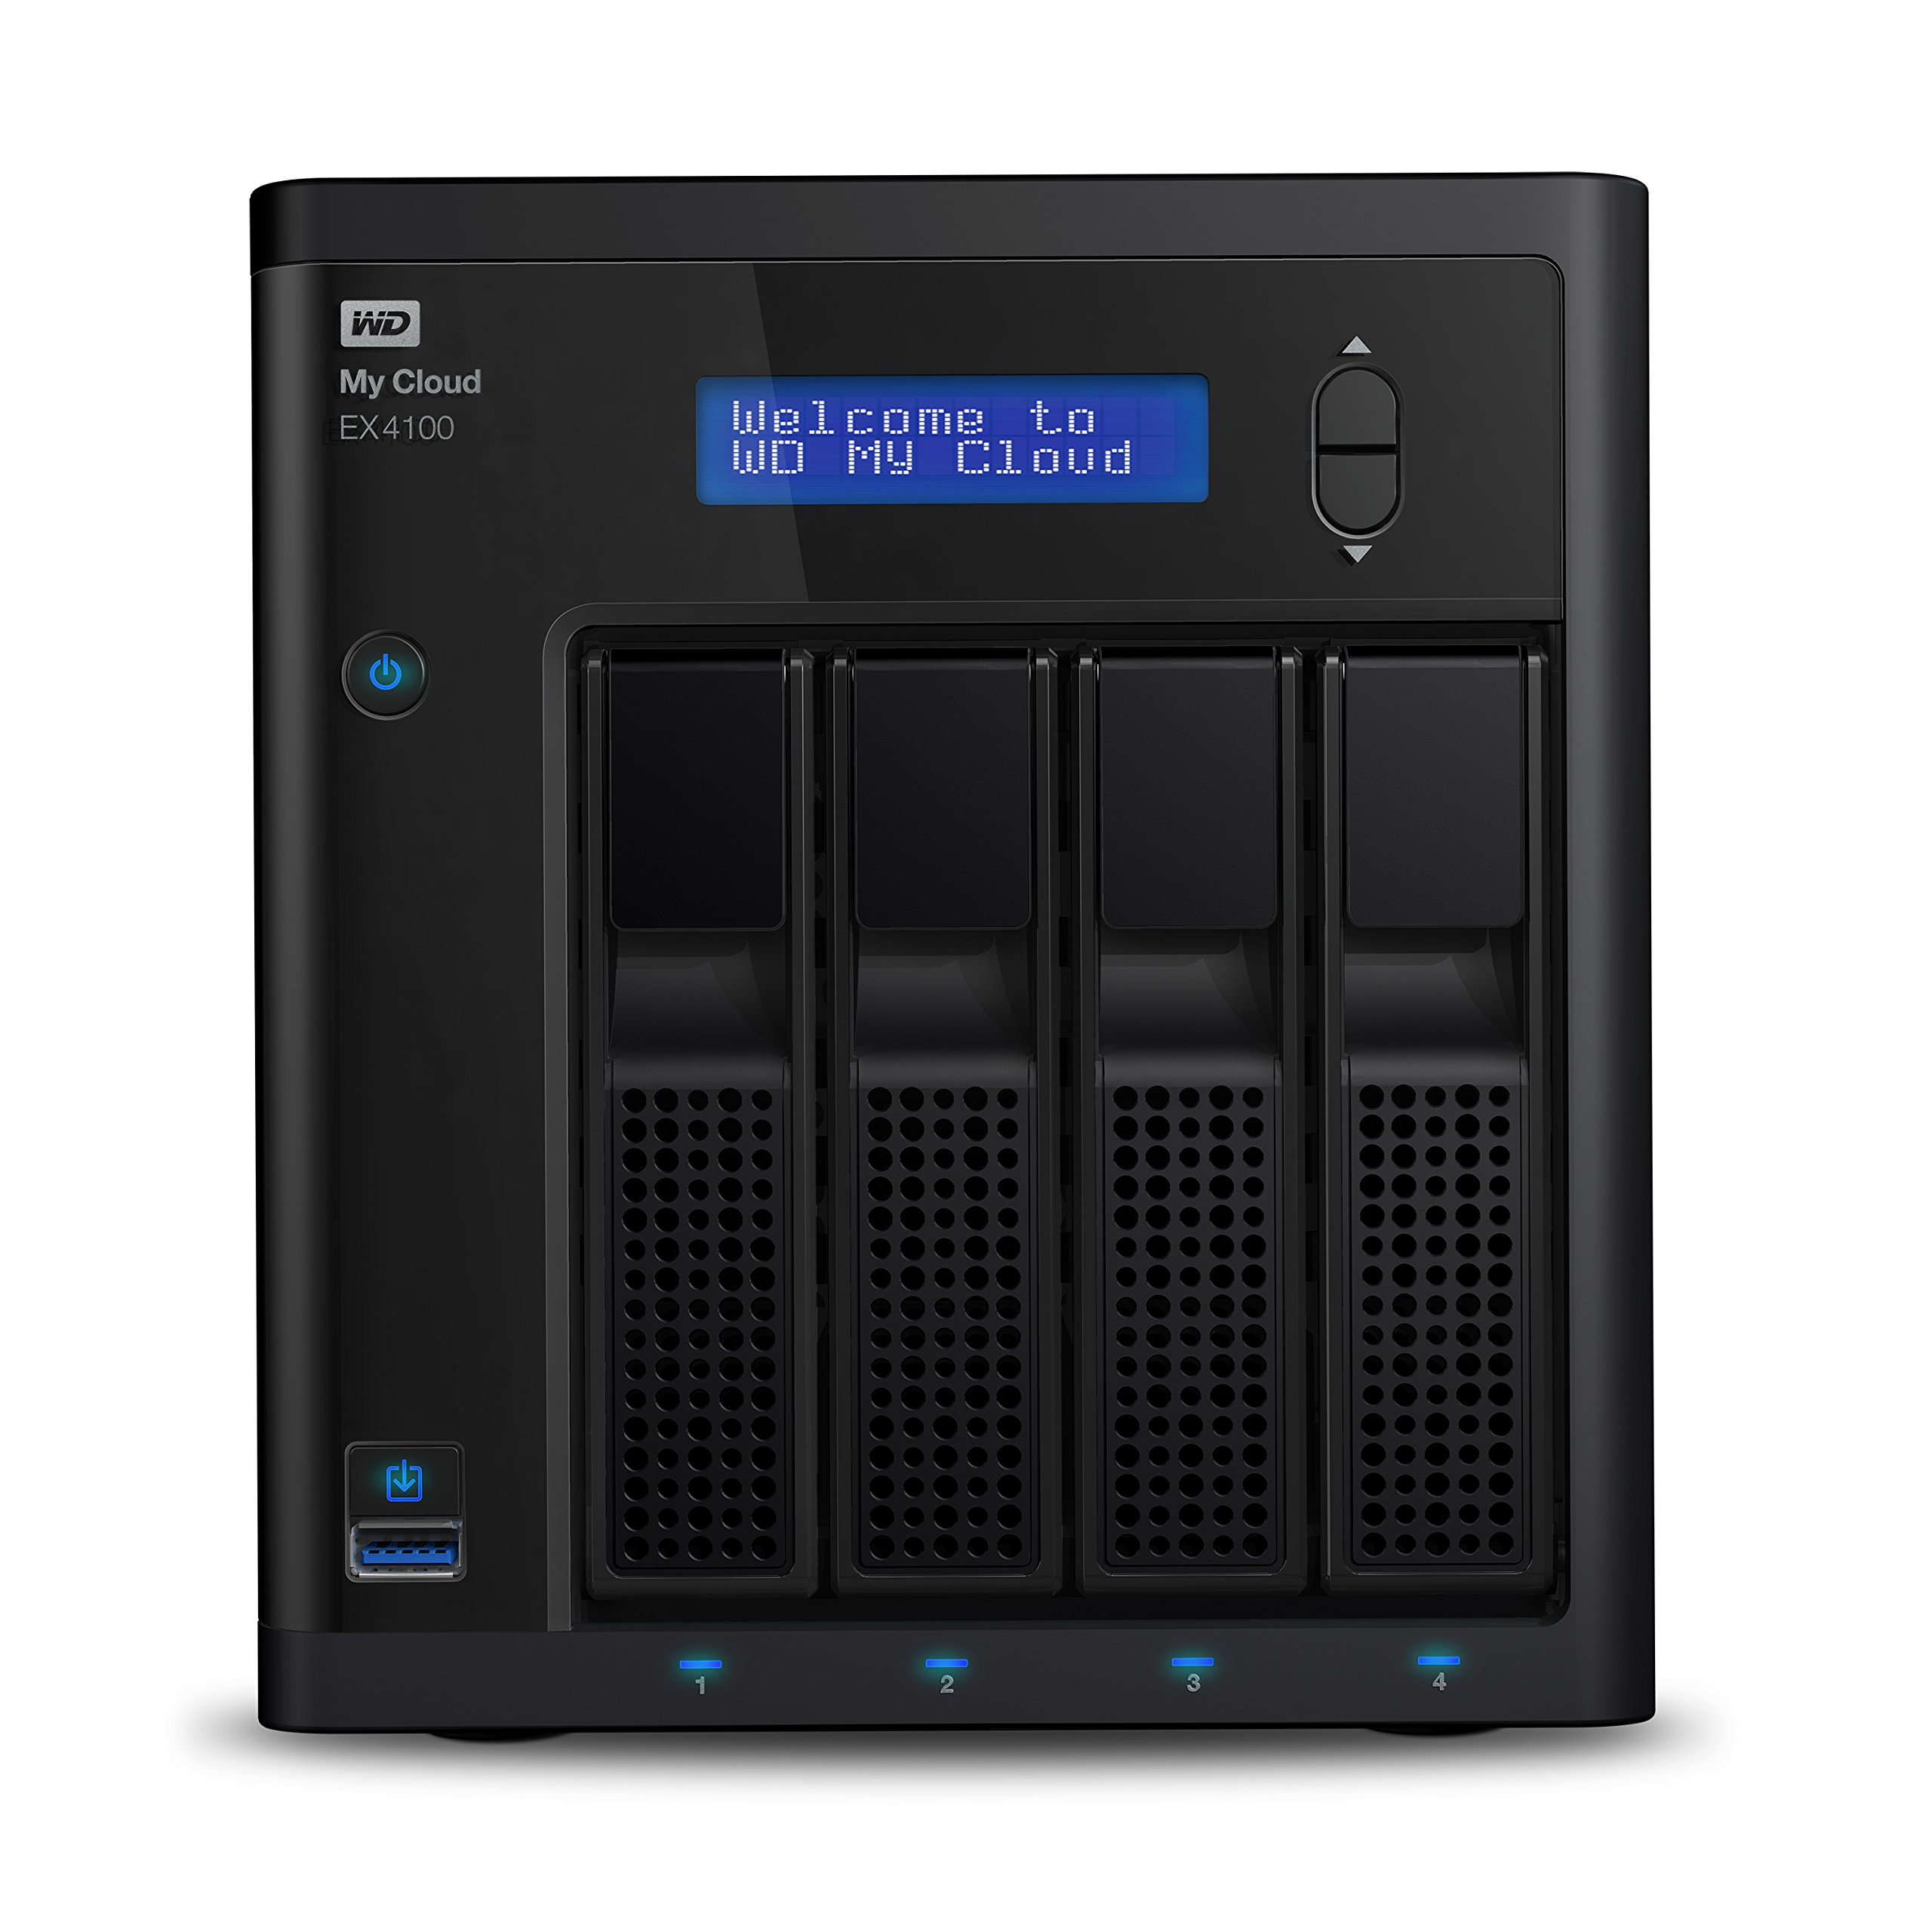 WD 24TB  My Cloud EX4100 Expert Series 4-Bay Network Attached Storage - NAS - WDBWZE0240KBK-NESN by Western Digital